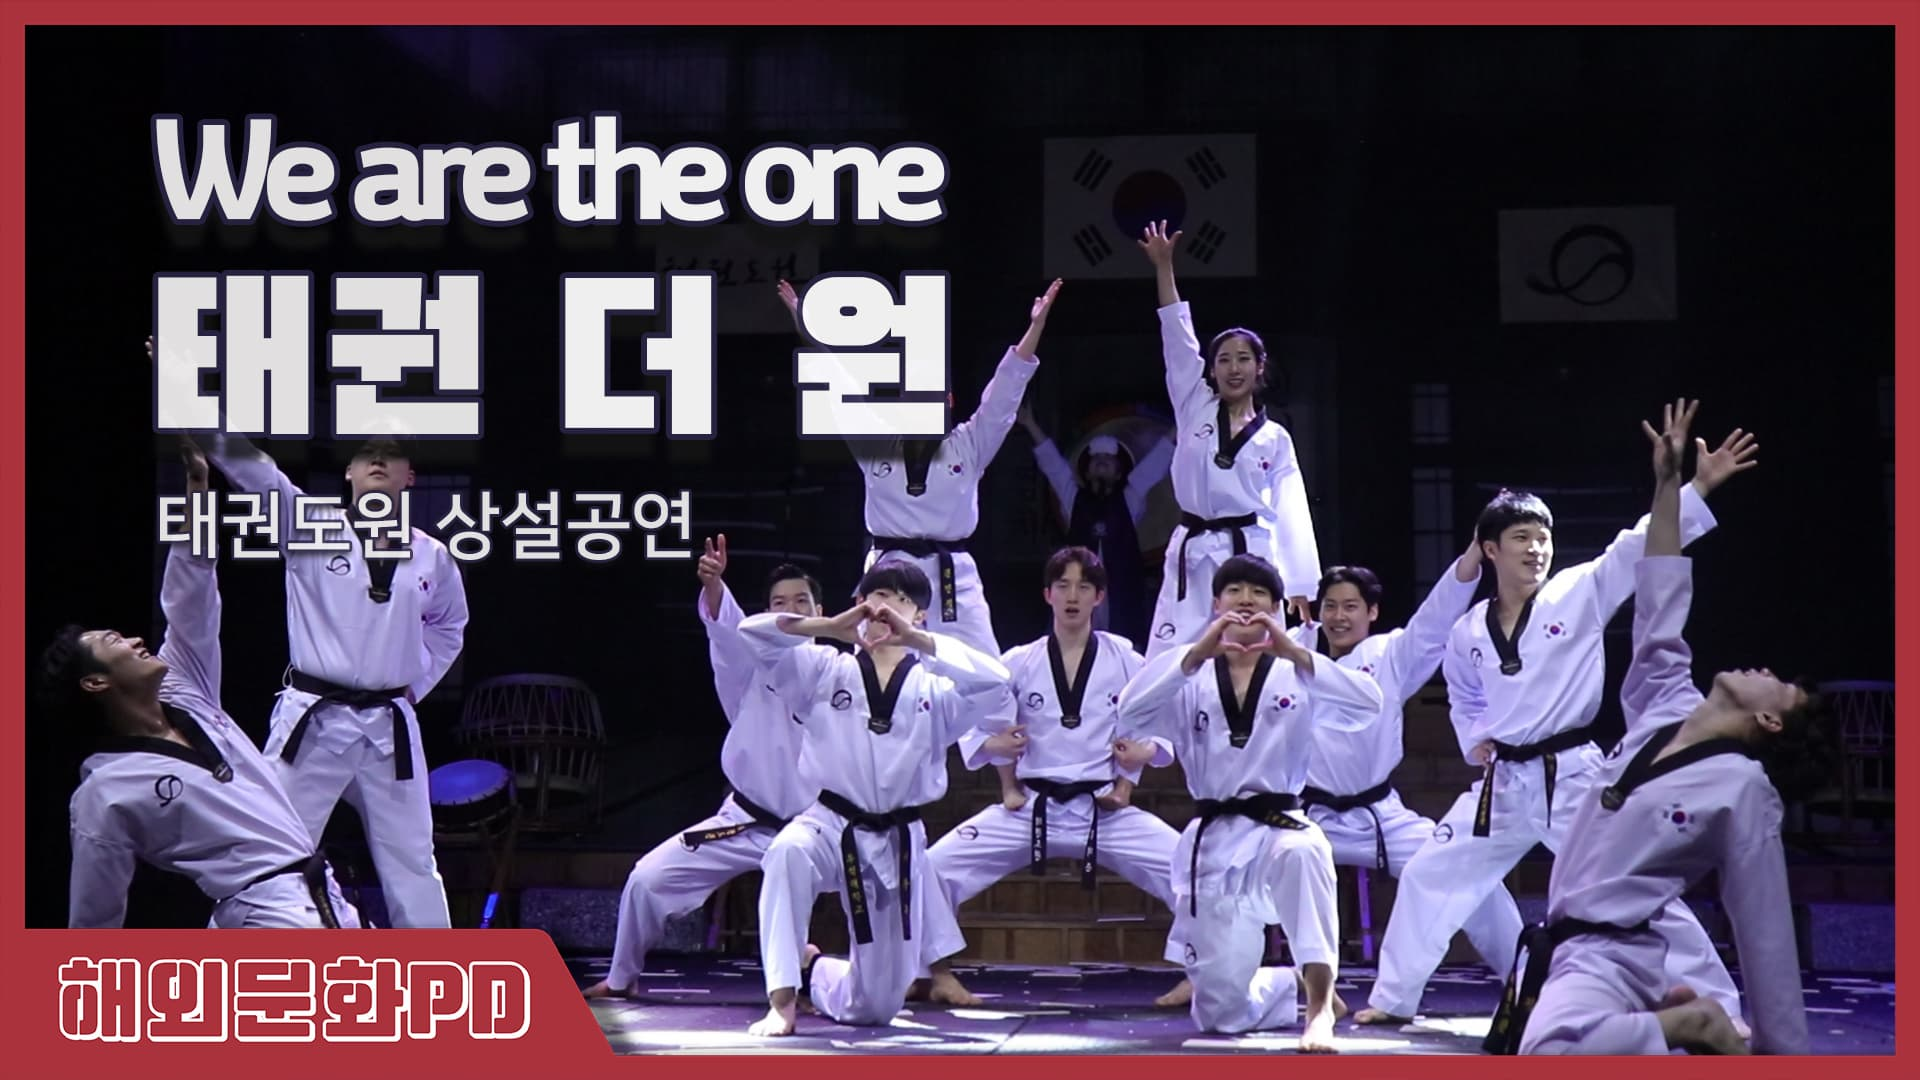 We are the one, 태권 더 원관련 이미지